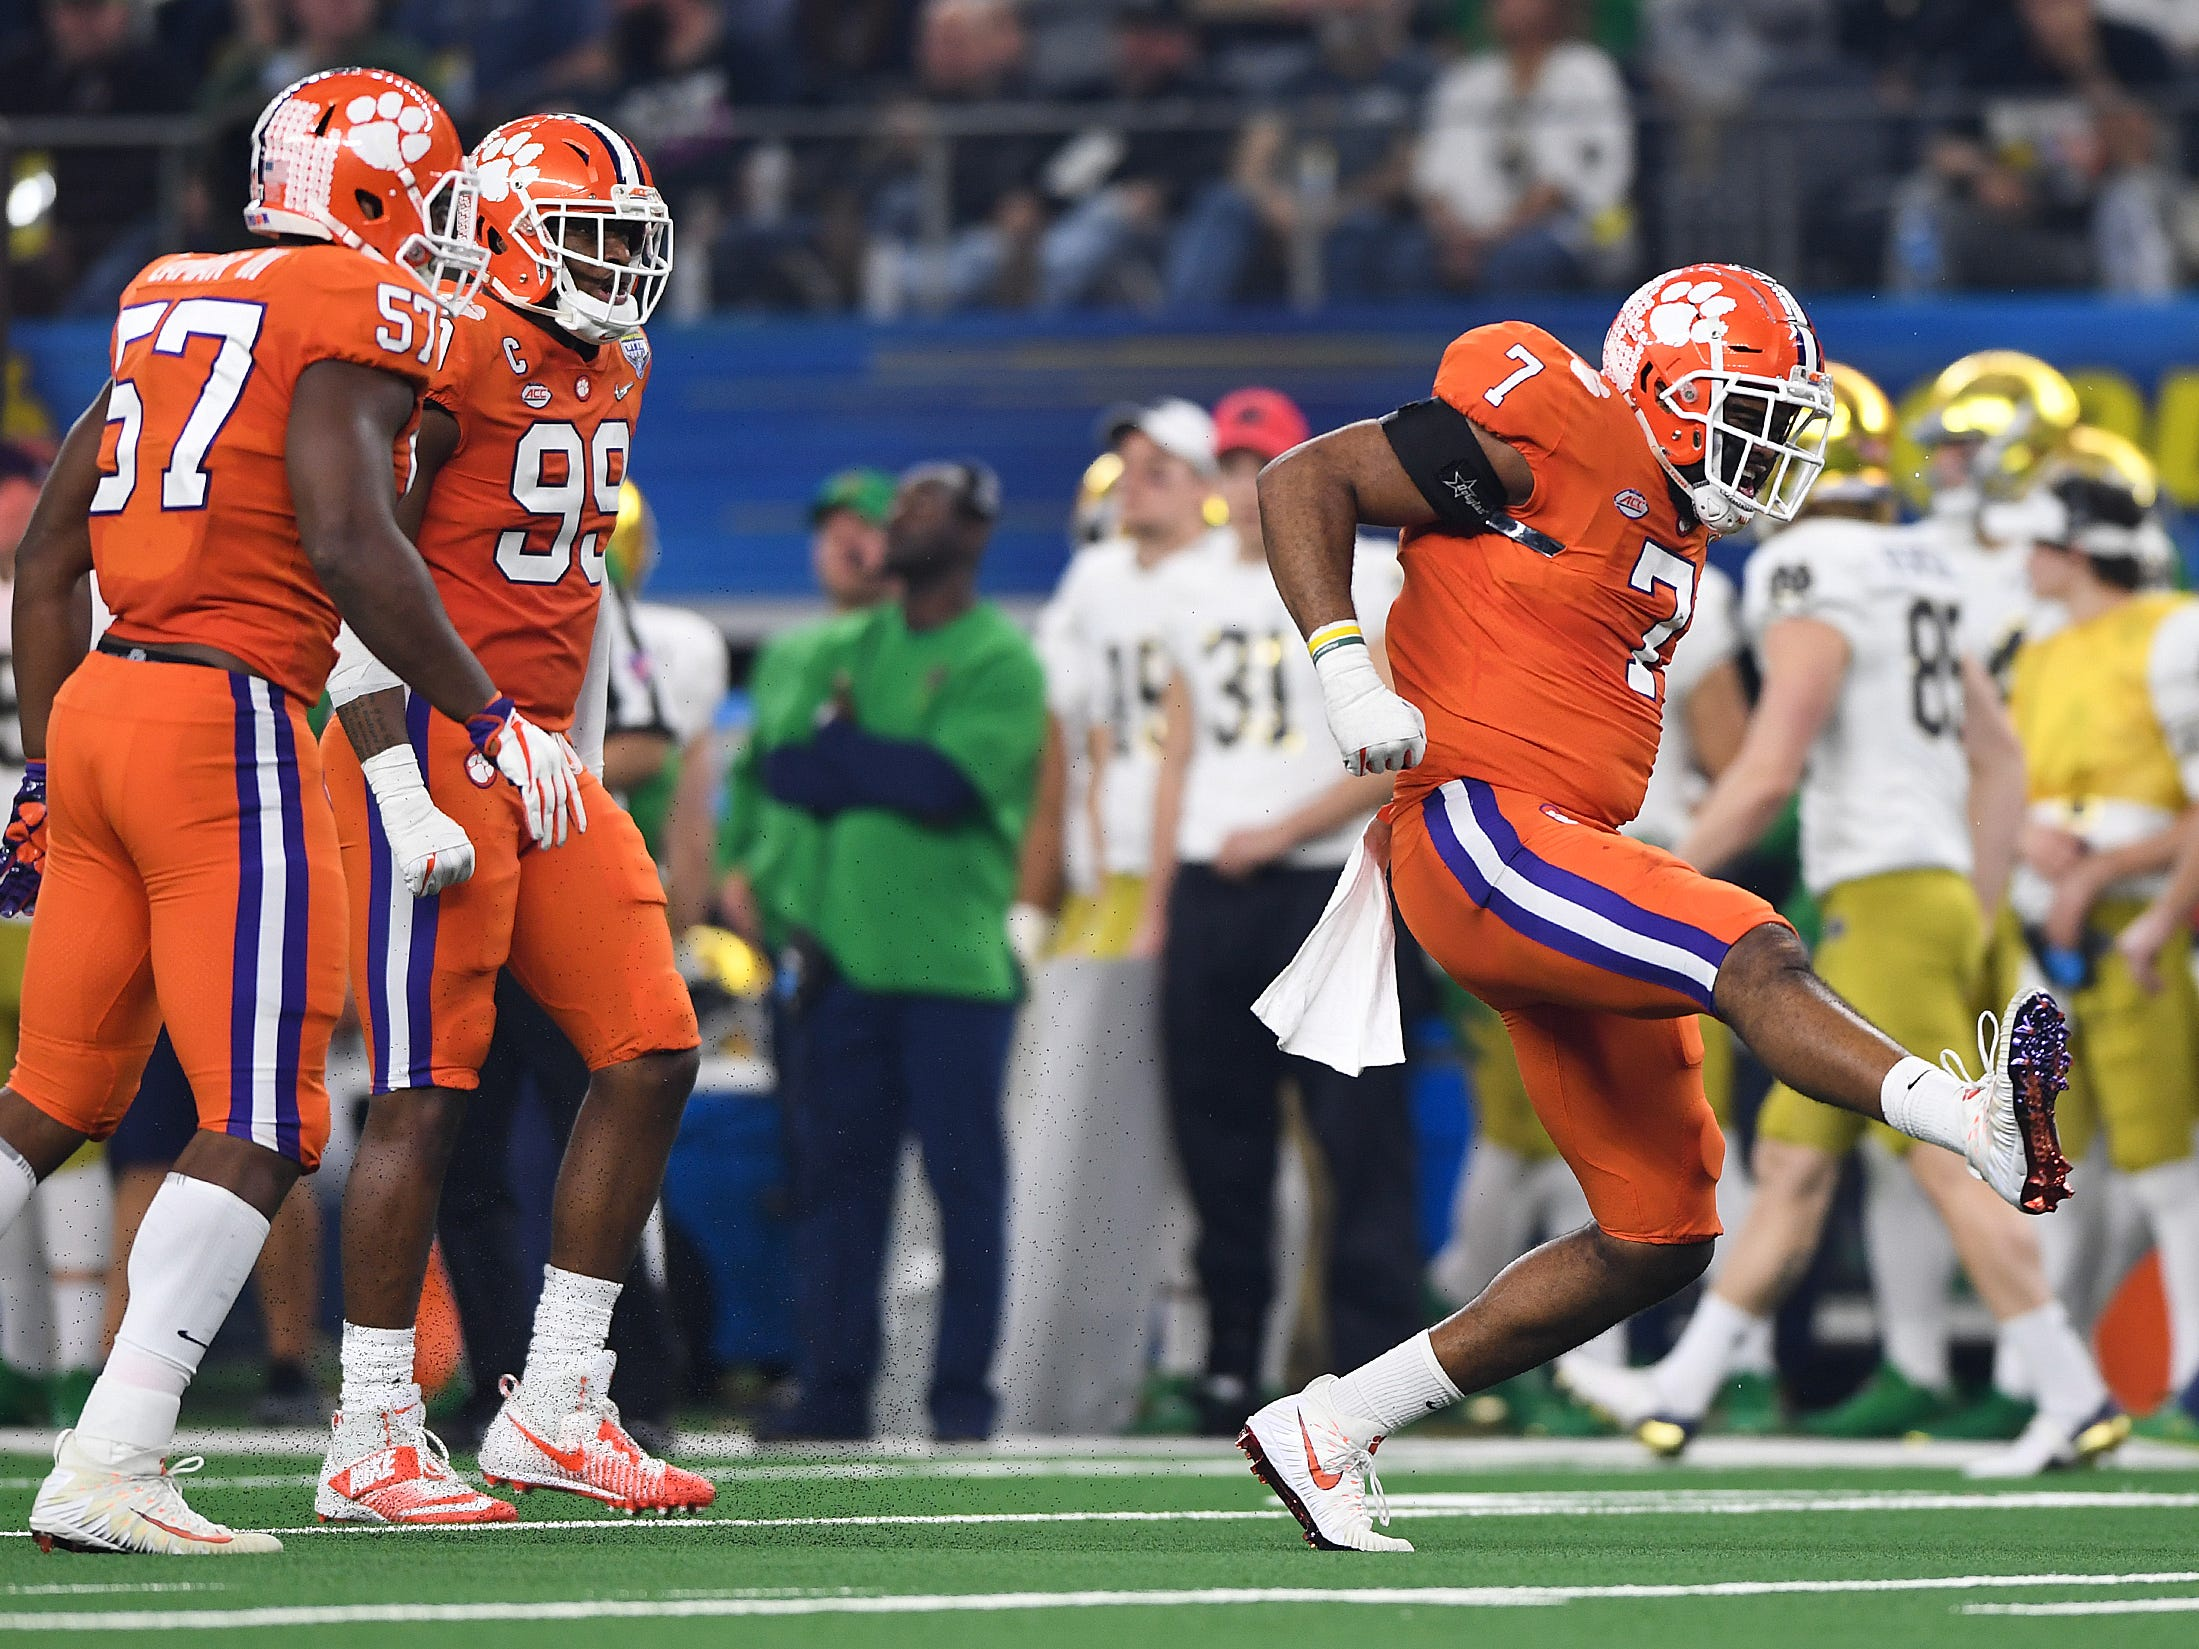 Clemson defensive lineman Austin Bryant (7) reacts after a defensive stop during the 2nd quarter of the Goodyear Cotton Bowl at AT&T stadium in Arlington, TX Saturday, December 29, 2018.